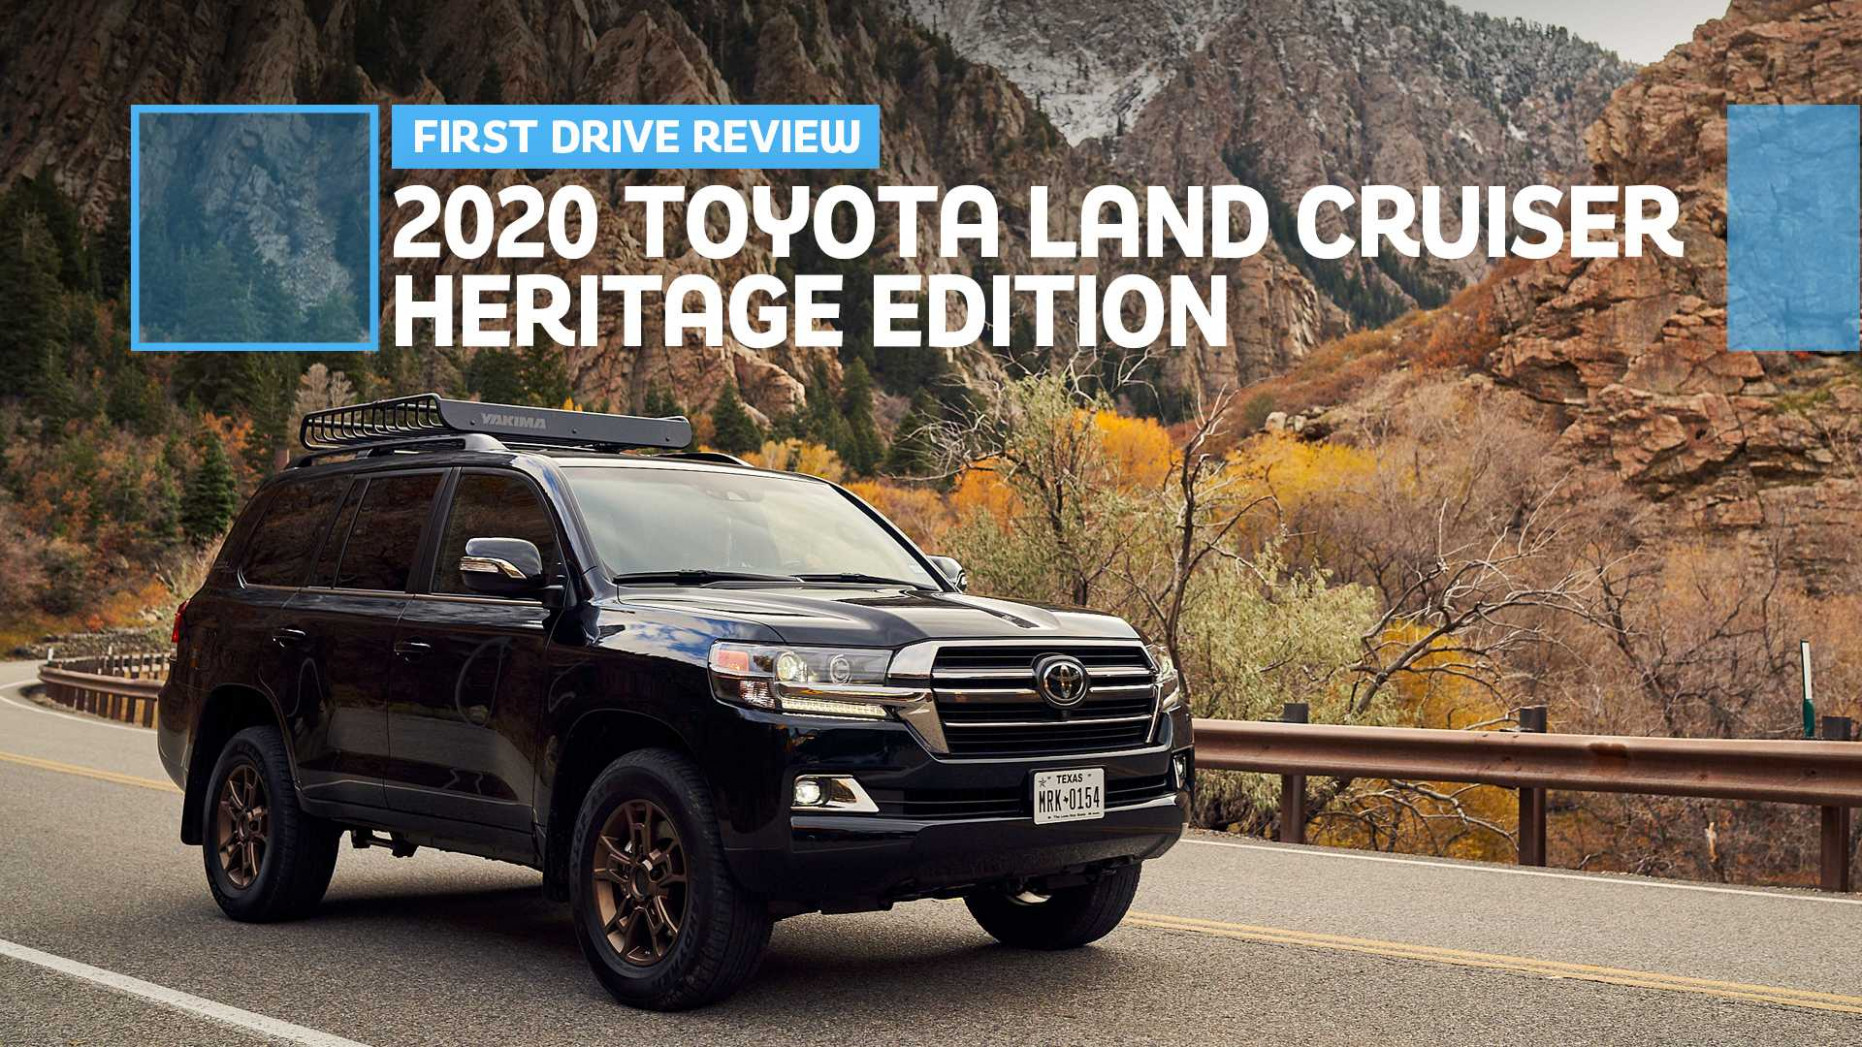 6 Toyota Land Cruiser Heritage Edition First Drive: Soldiering On